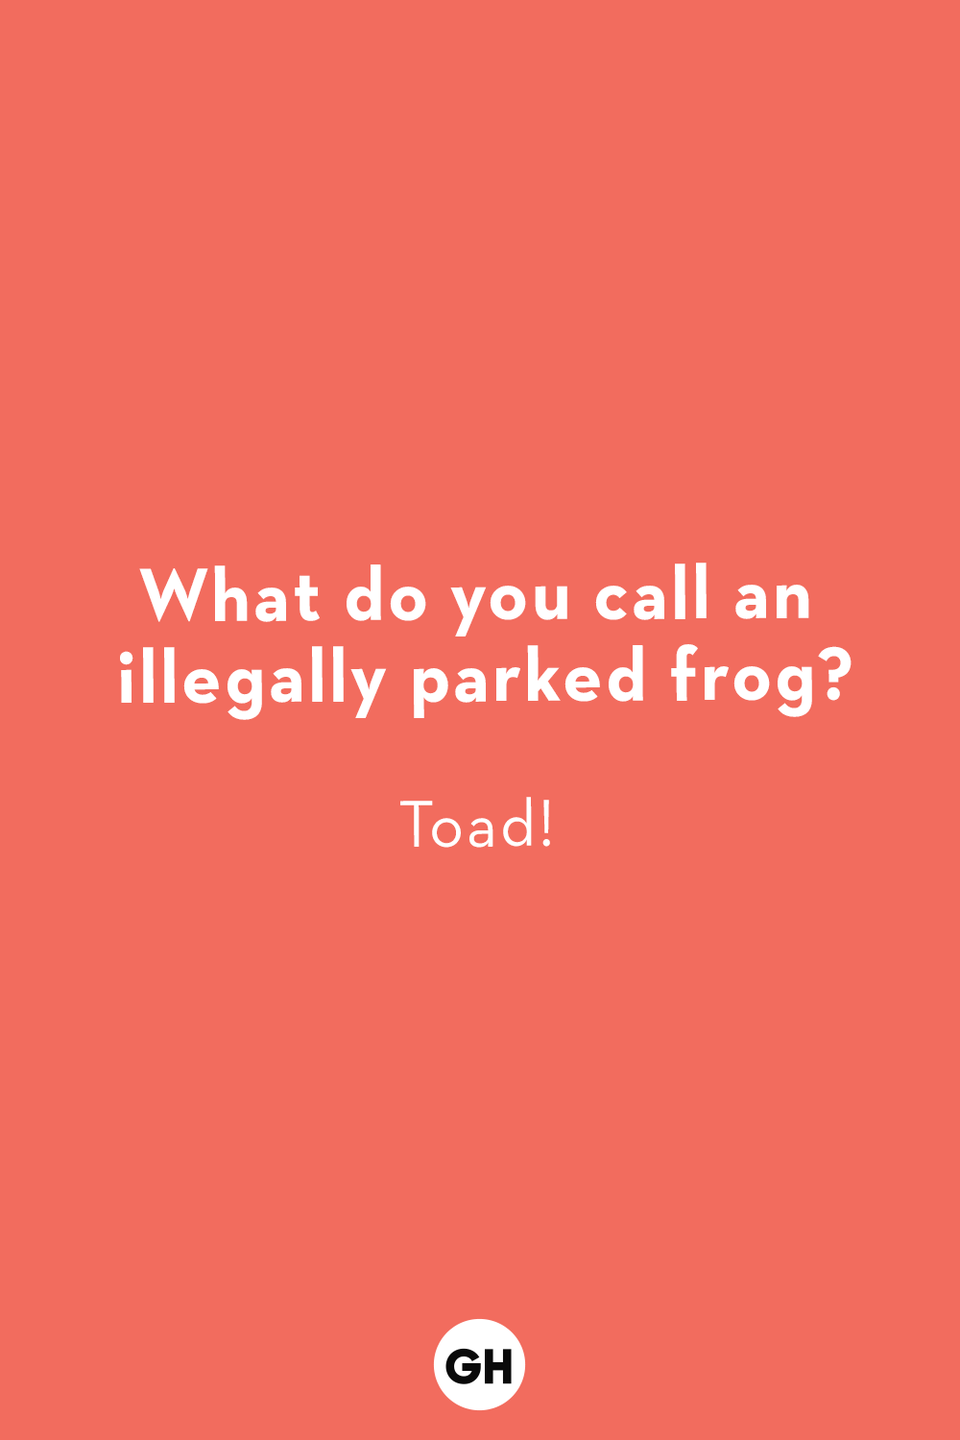 <p>Toad!</p>